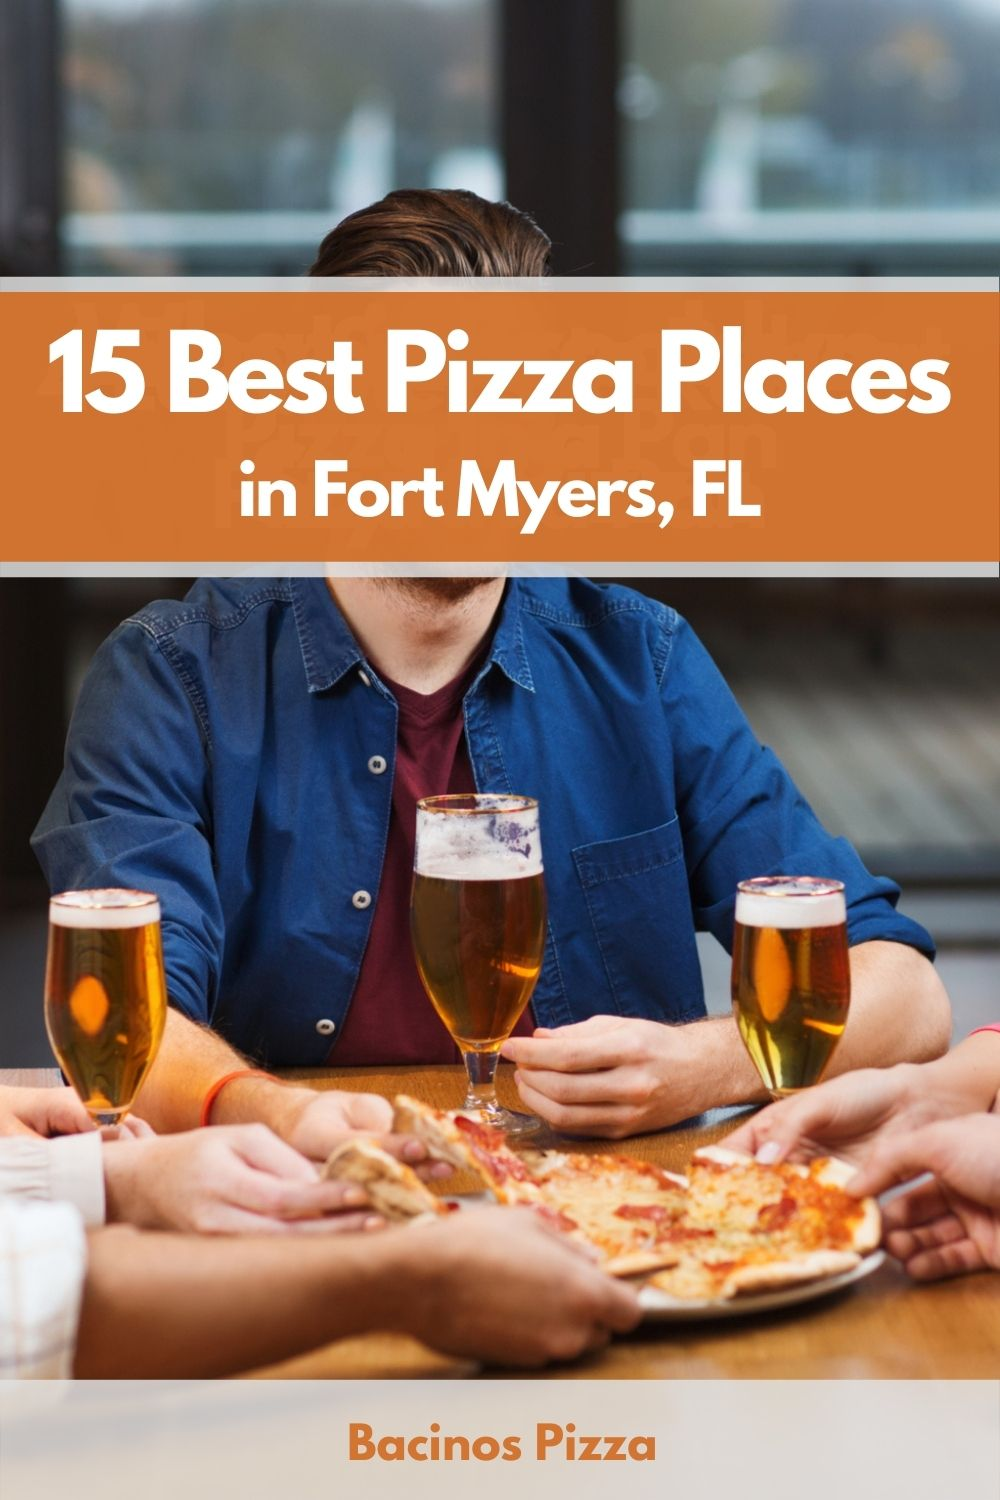 15 Best Pizza Places in Fort Myers, FL pin 2